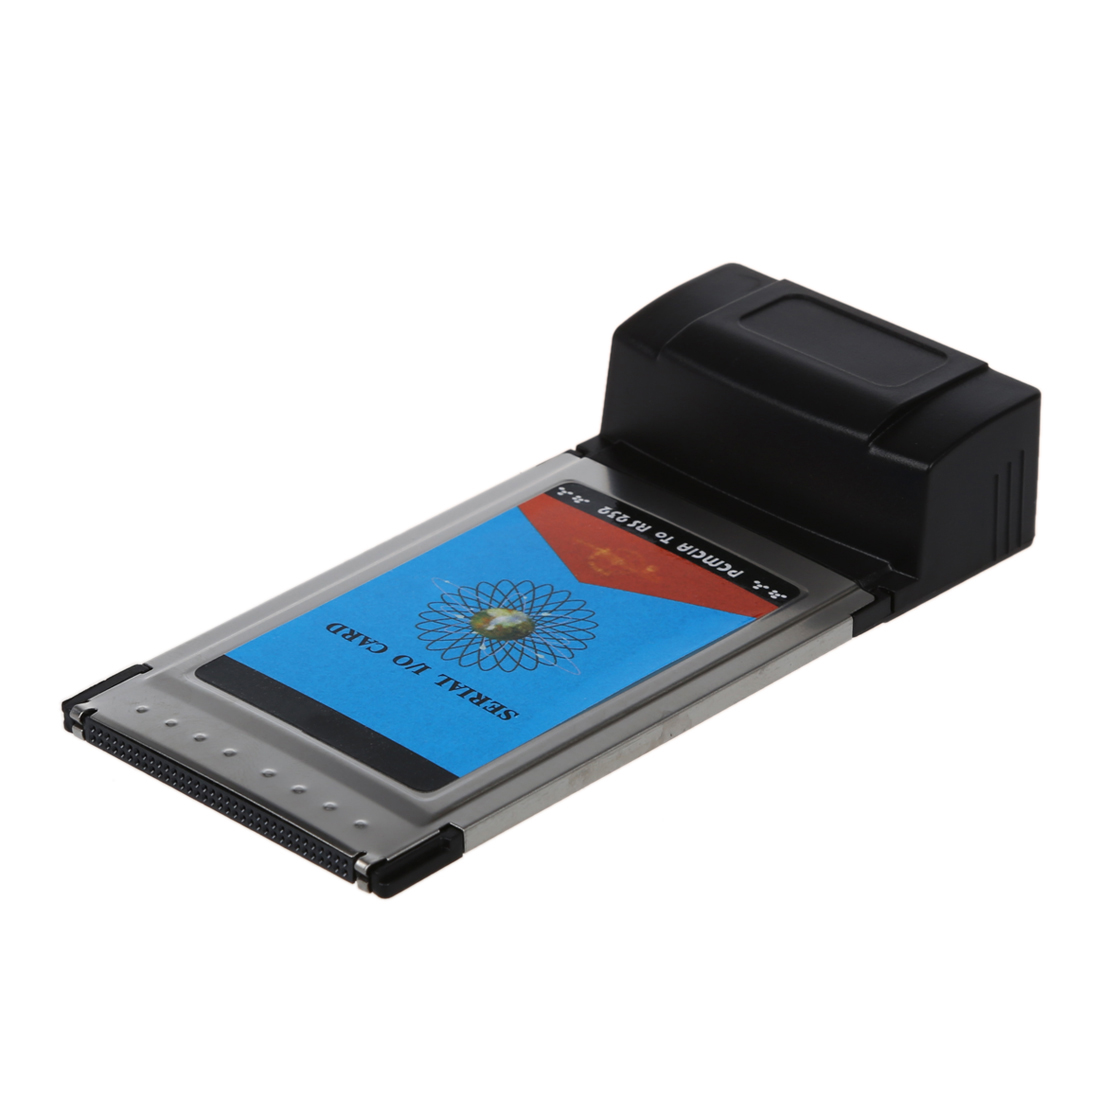 Pcmcia card slot rs232 casino bourse bruxelles